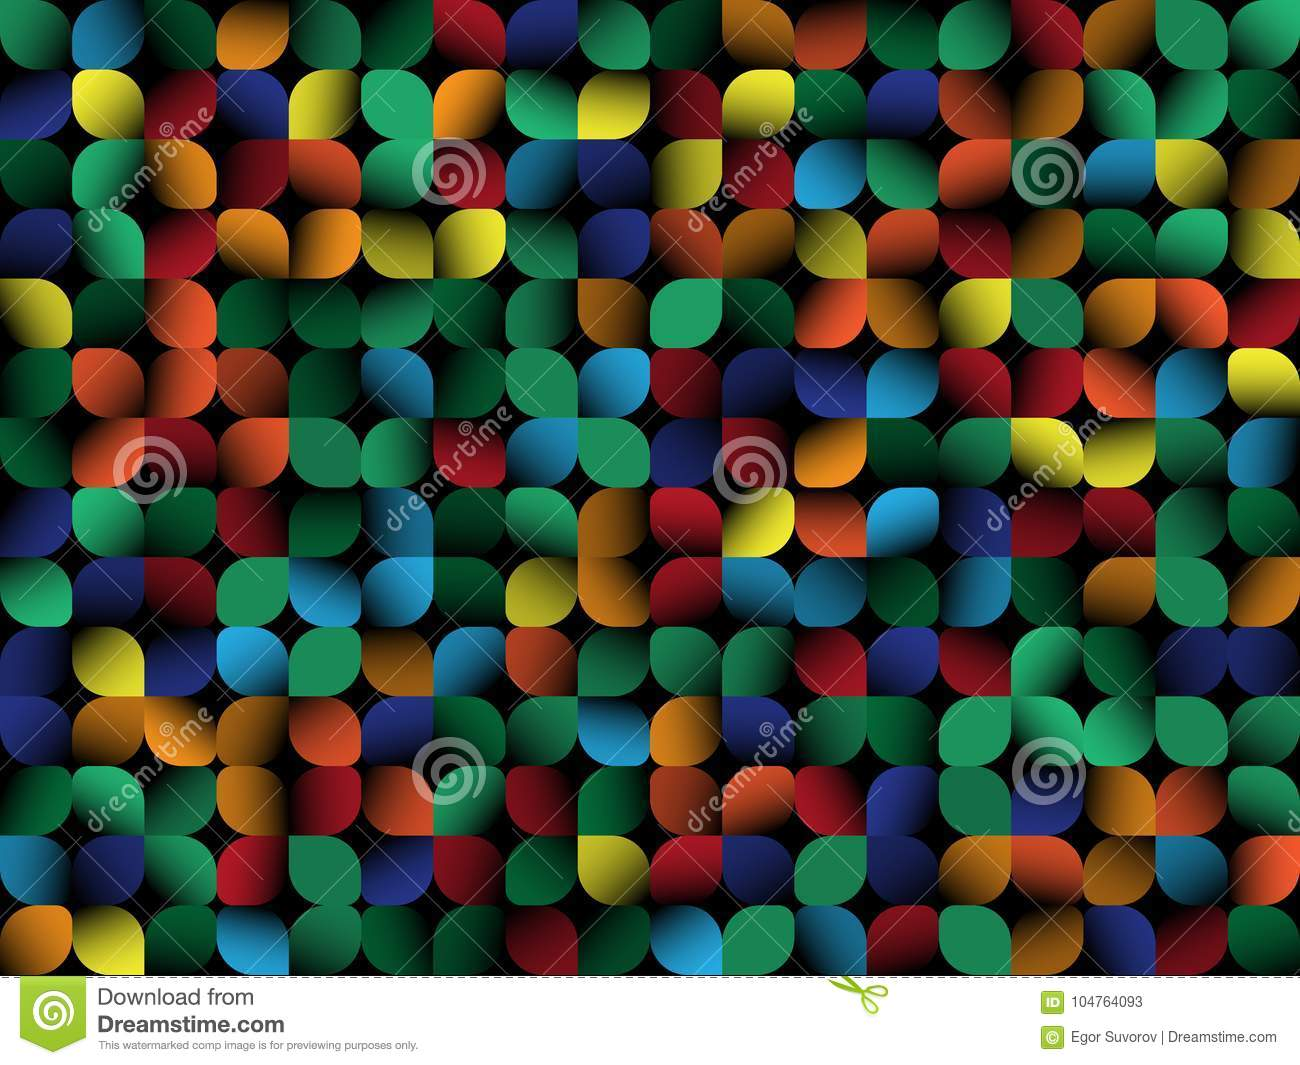 Geometrical abstract background. Color elements on black